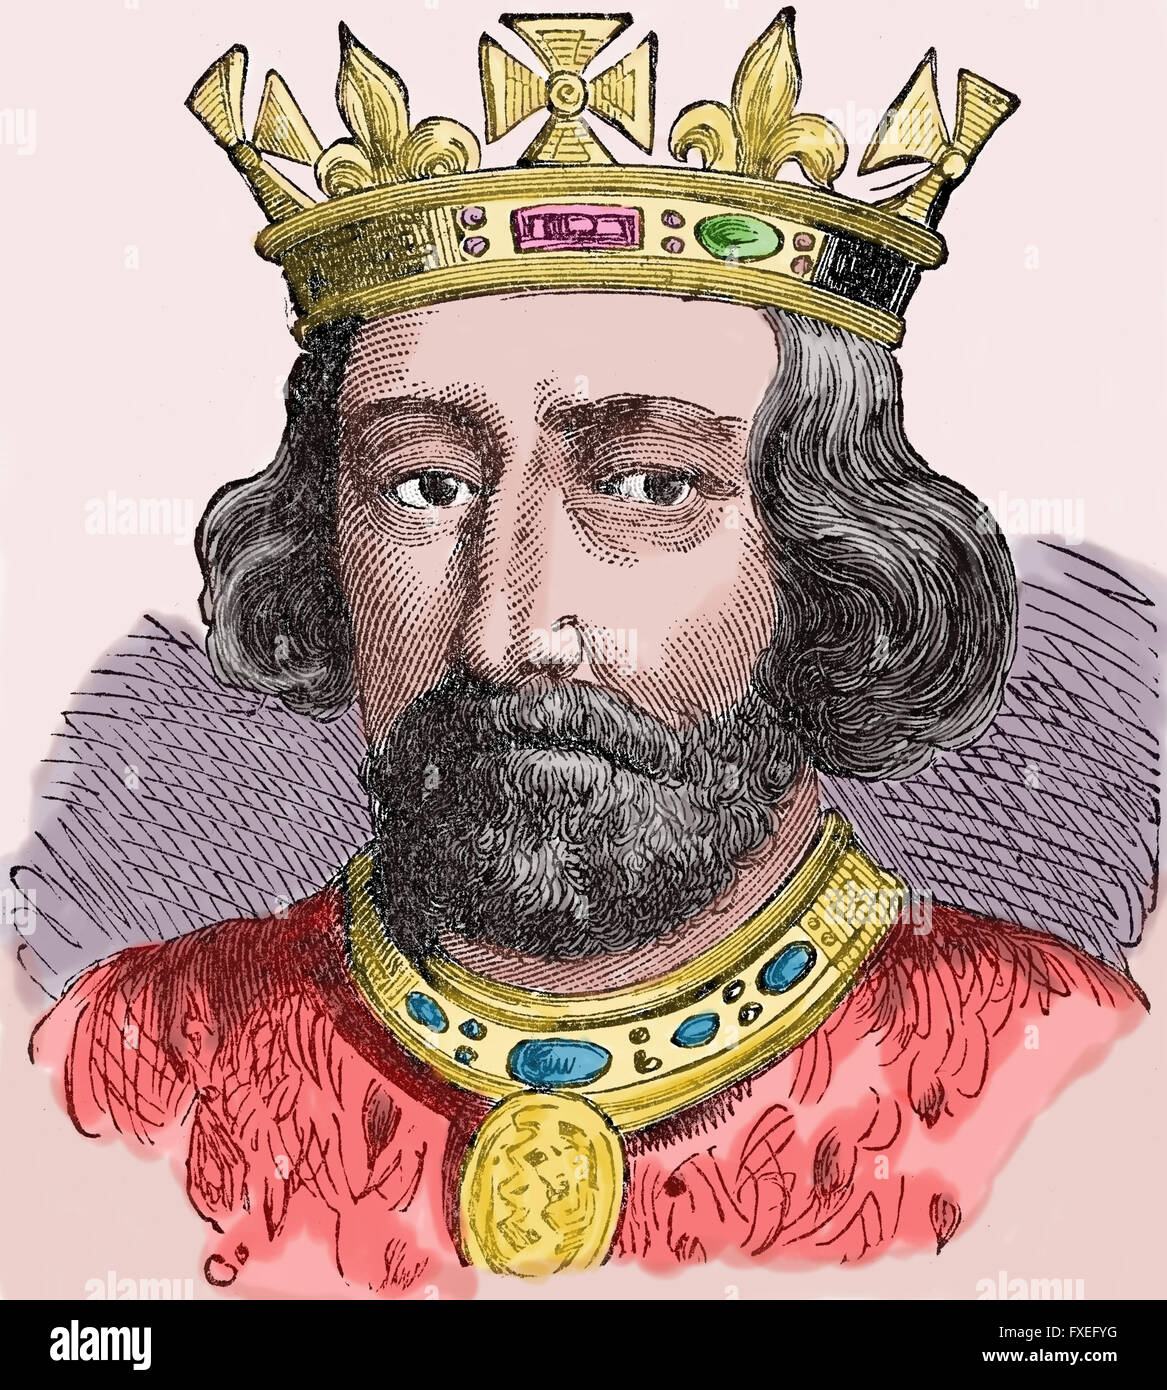 Eduard II (1284-1327) King of England (1307-1327). House of Plantagenet. Engraving, color. - Stock Image